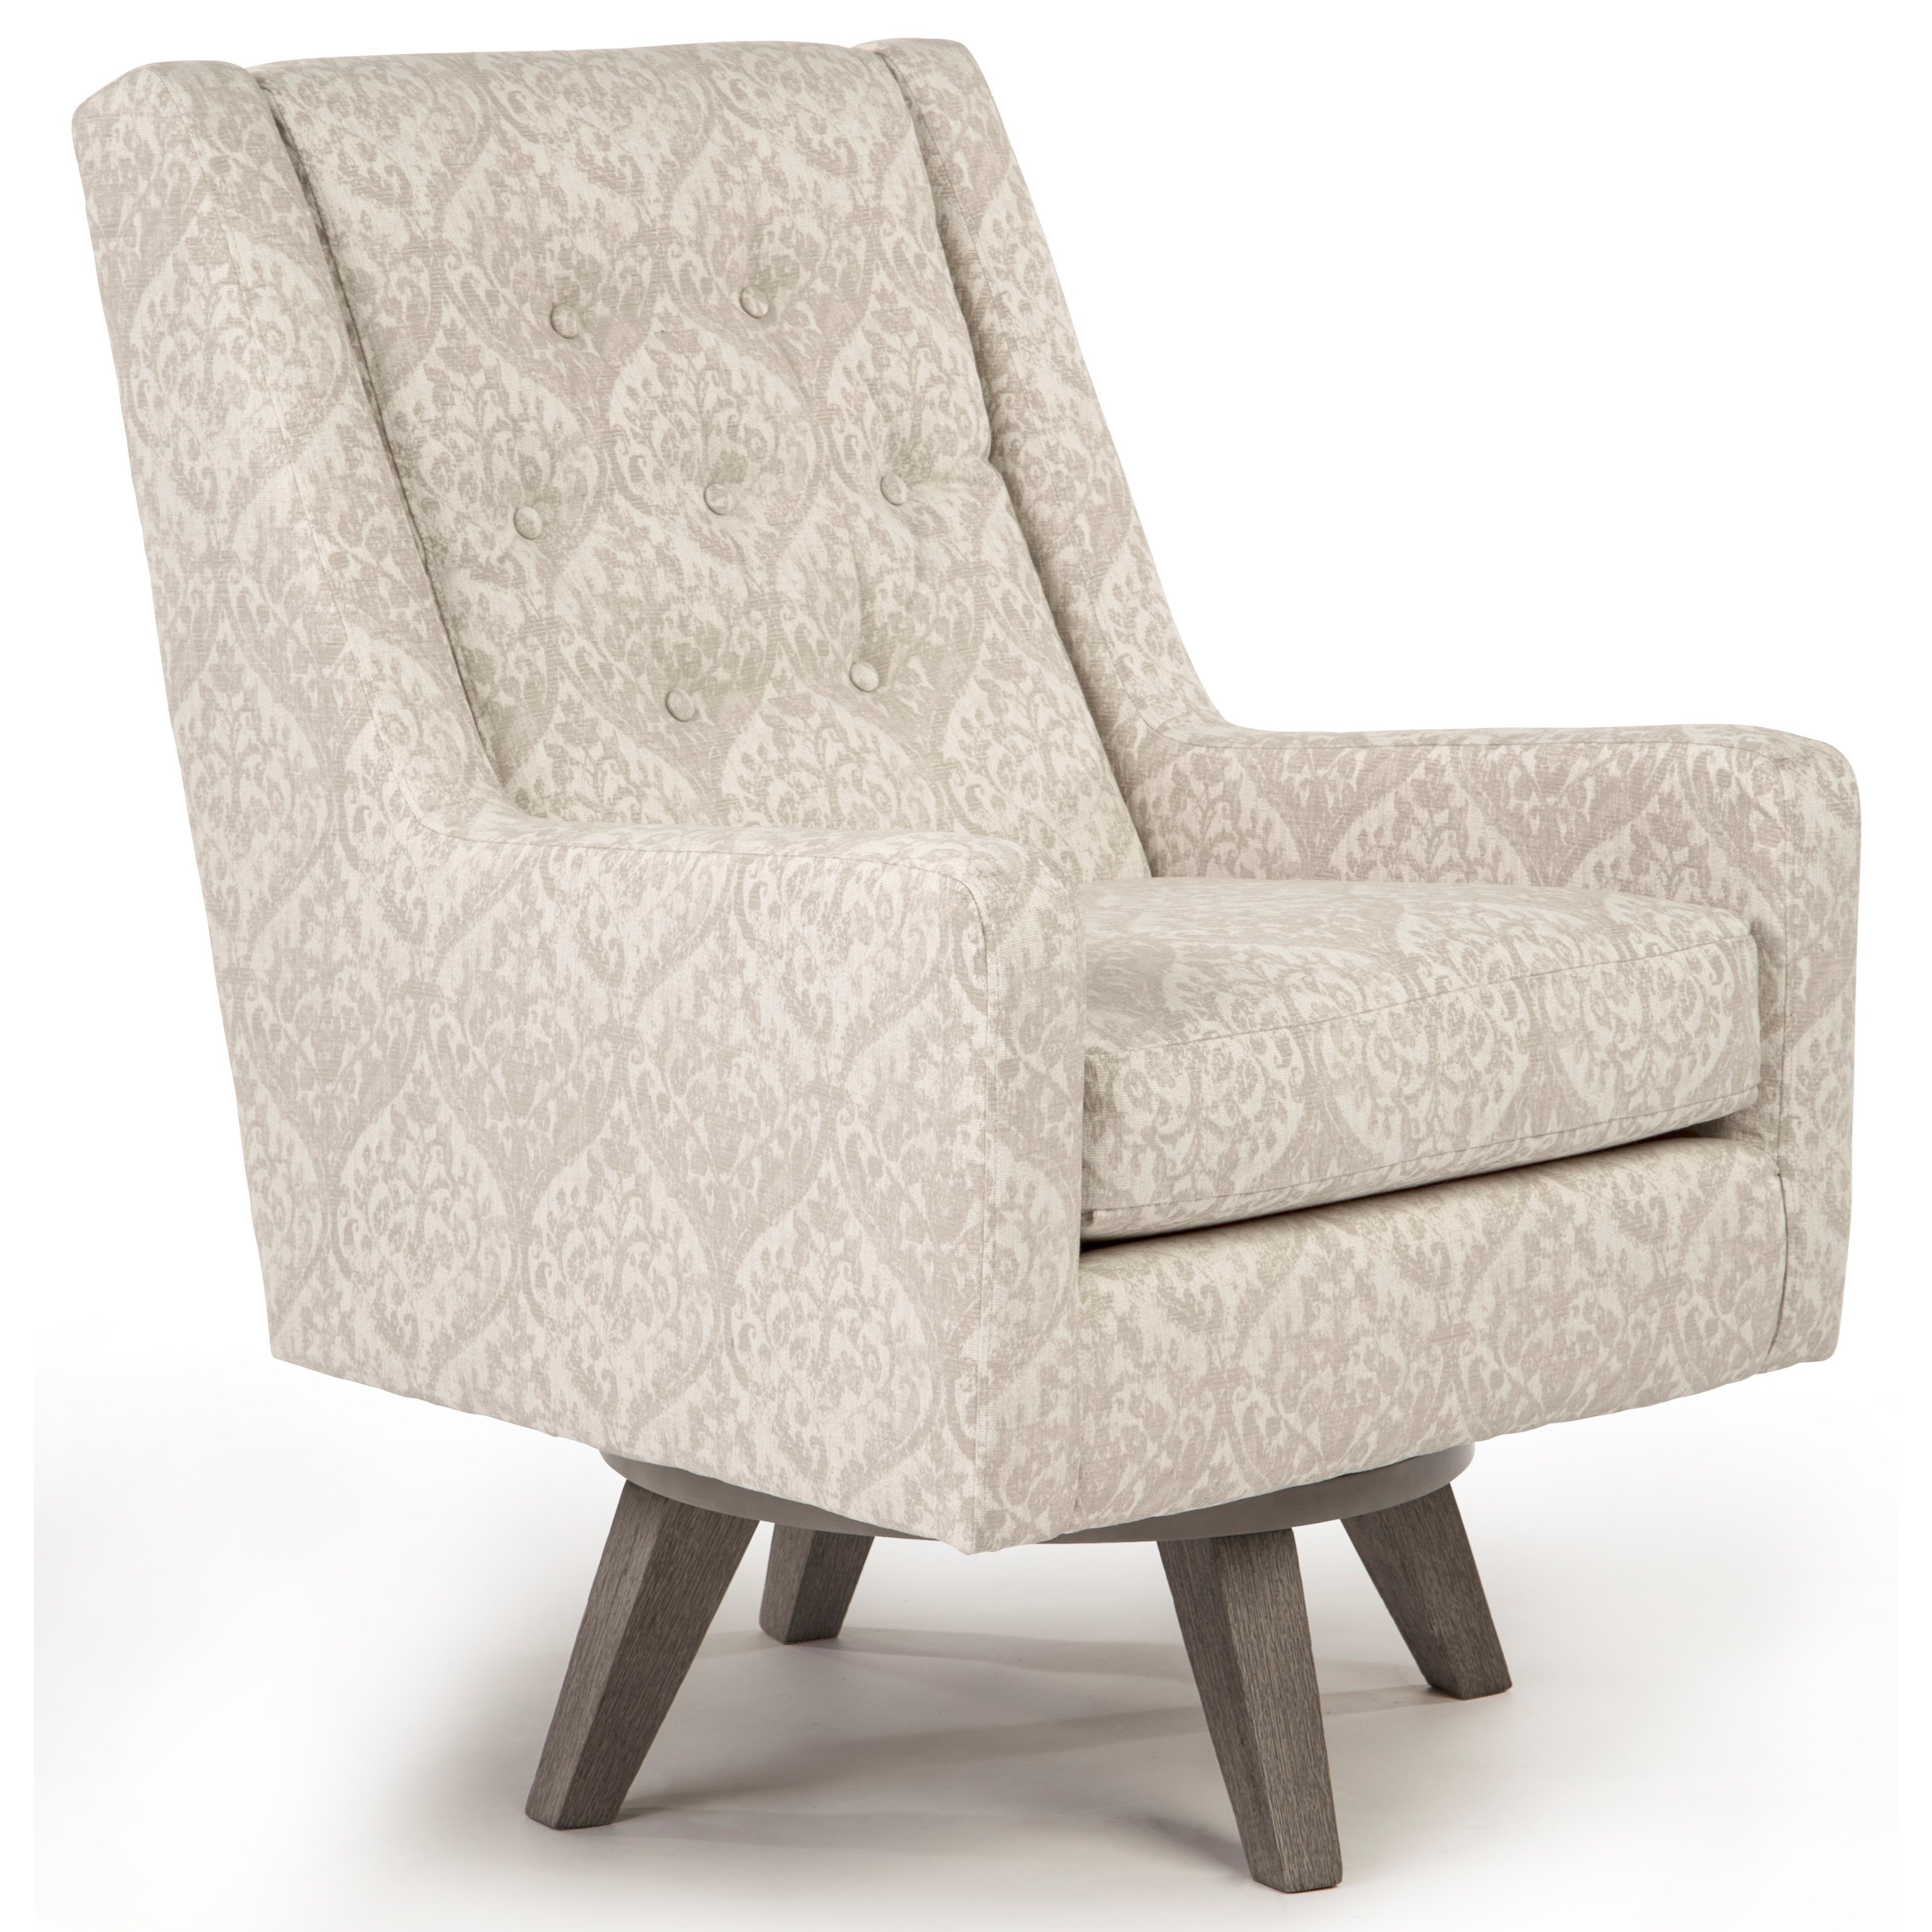 Image of: Best Home Furnishings Kale Mid Century Modern Swivel Chair Wayside Furniture Upholstered Chairs